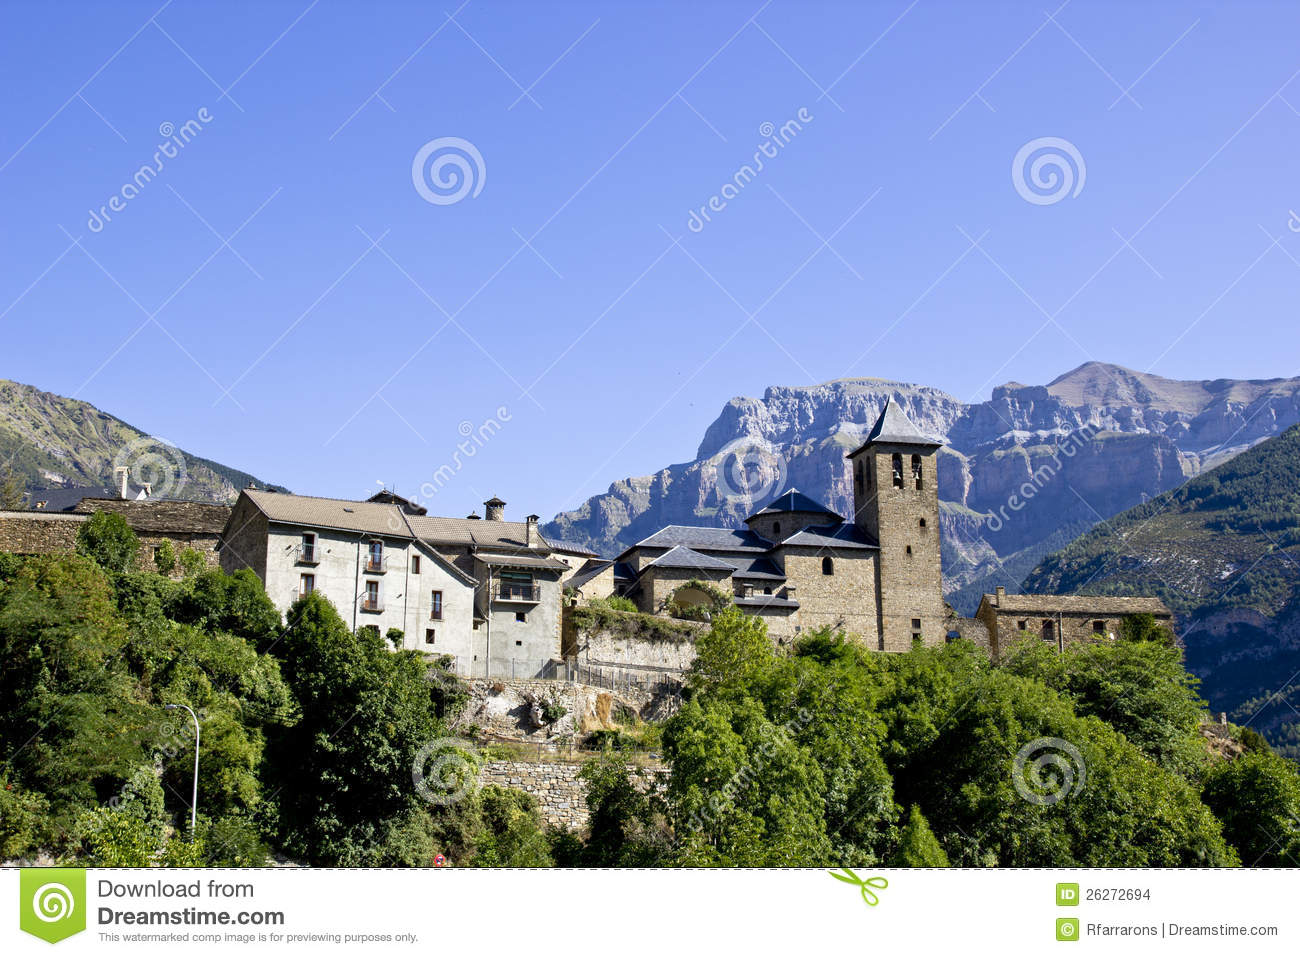 Torla Spain  city images : Village Of Torla, Spain Stock Images Image: 26272694